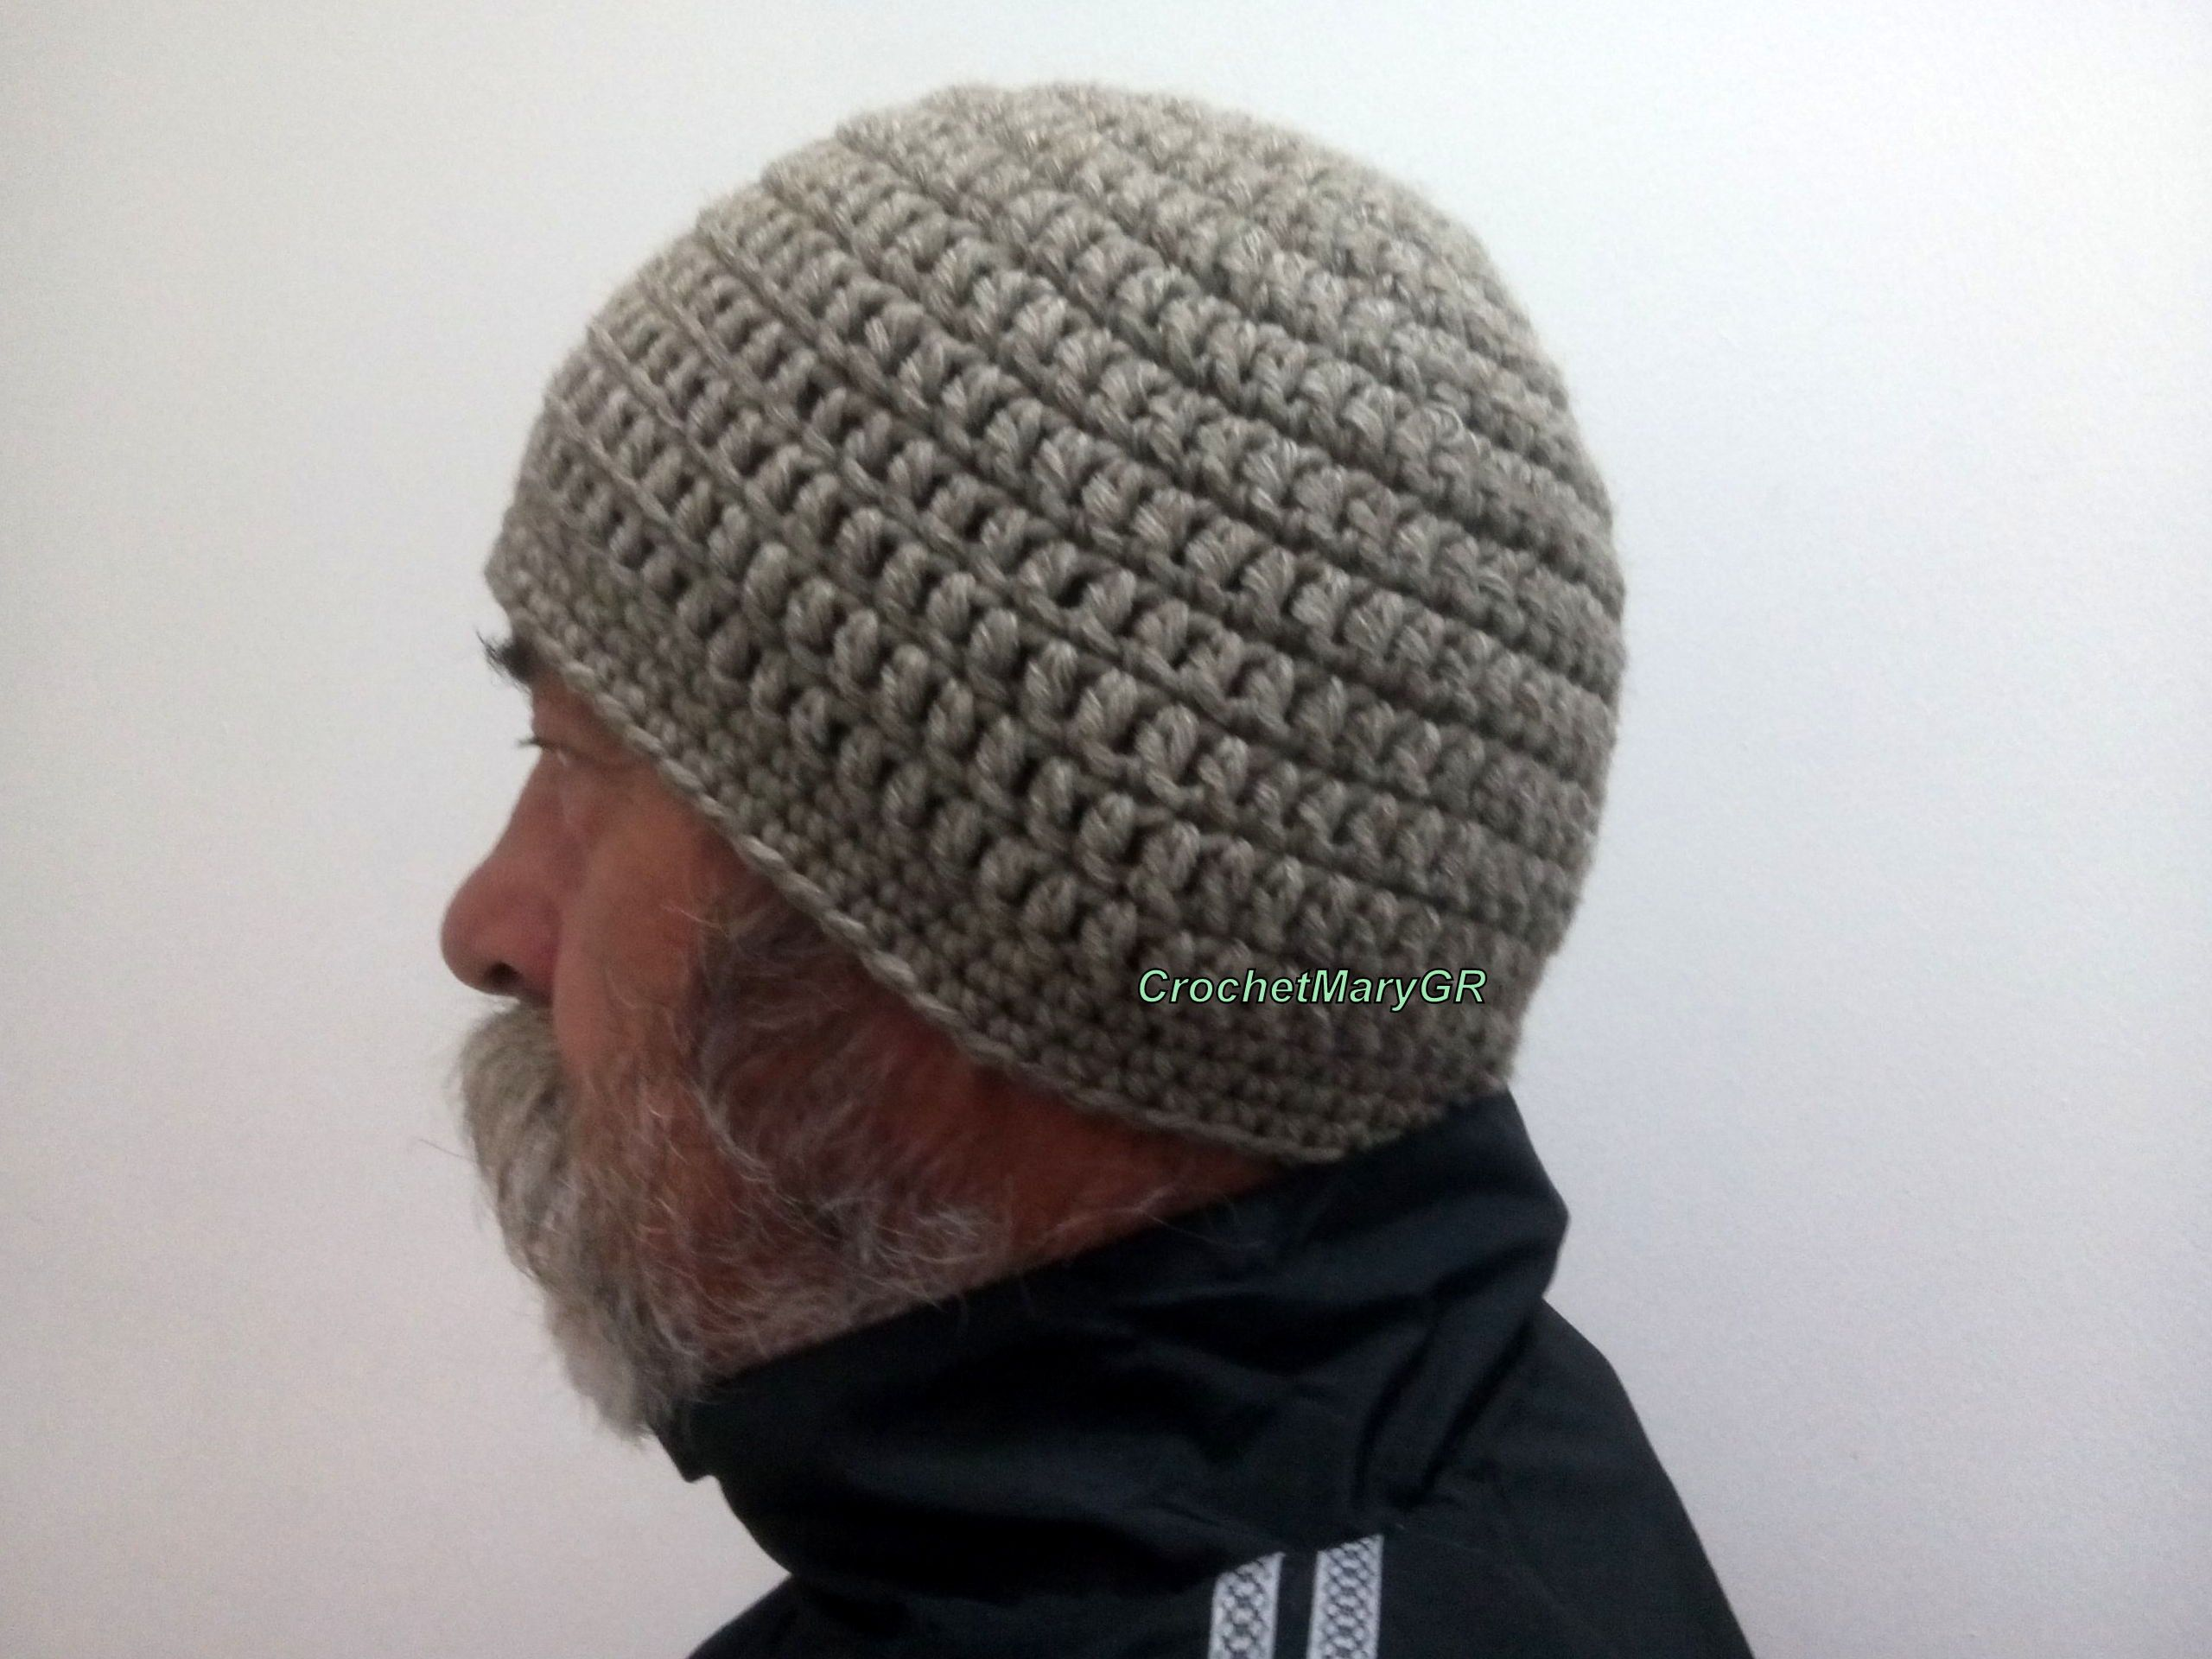 Crochet Hat Men Crochet Hat Beanie man hat wool Crochet Man Skull Cap Father's day gift, Beige hat Wool hat Adult crochet hat, winter hat #menscrochetedhats